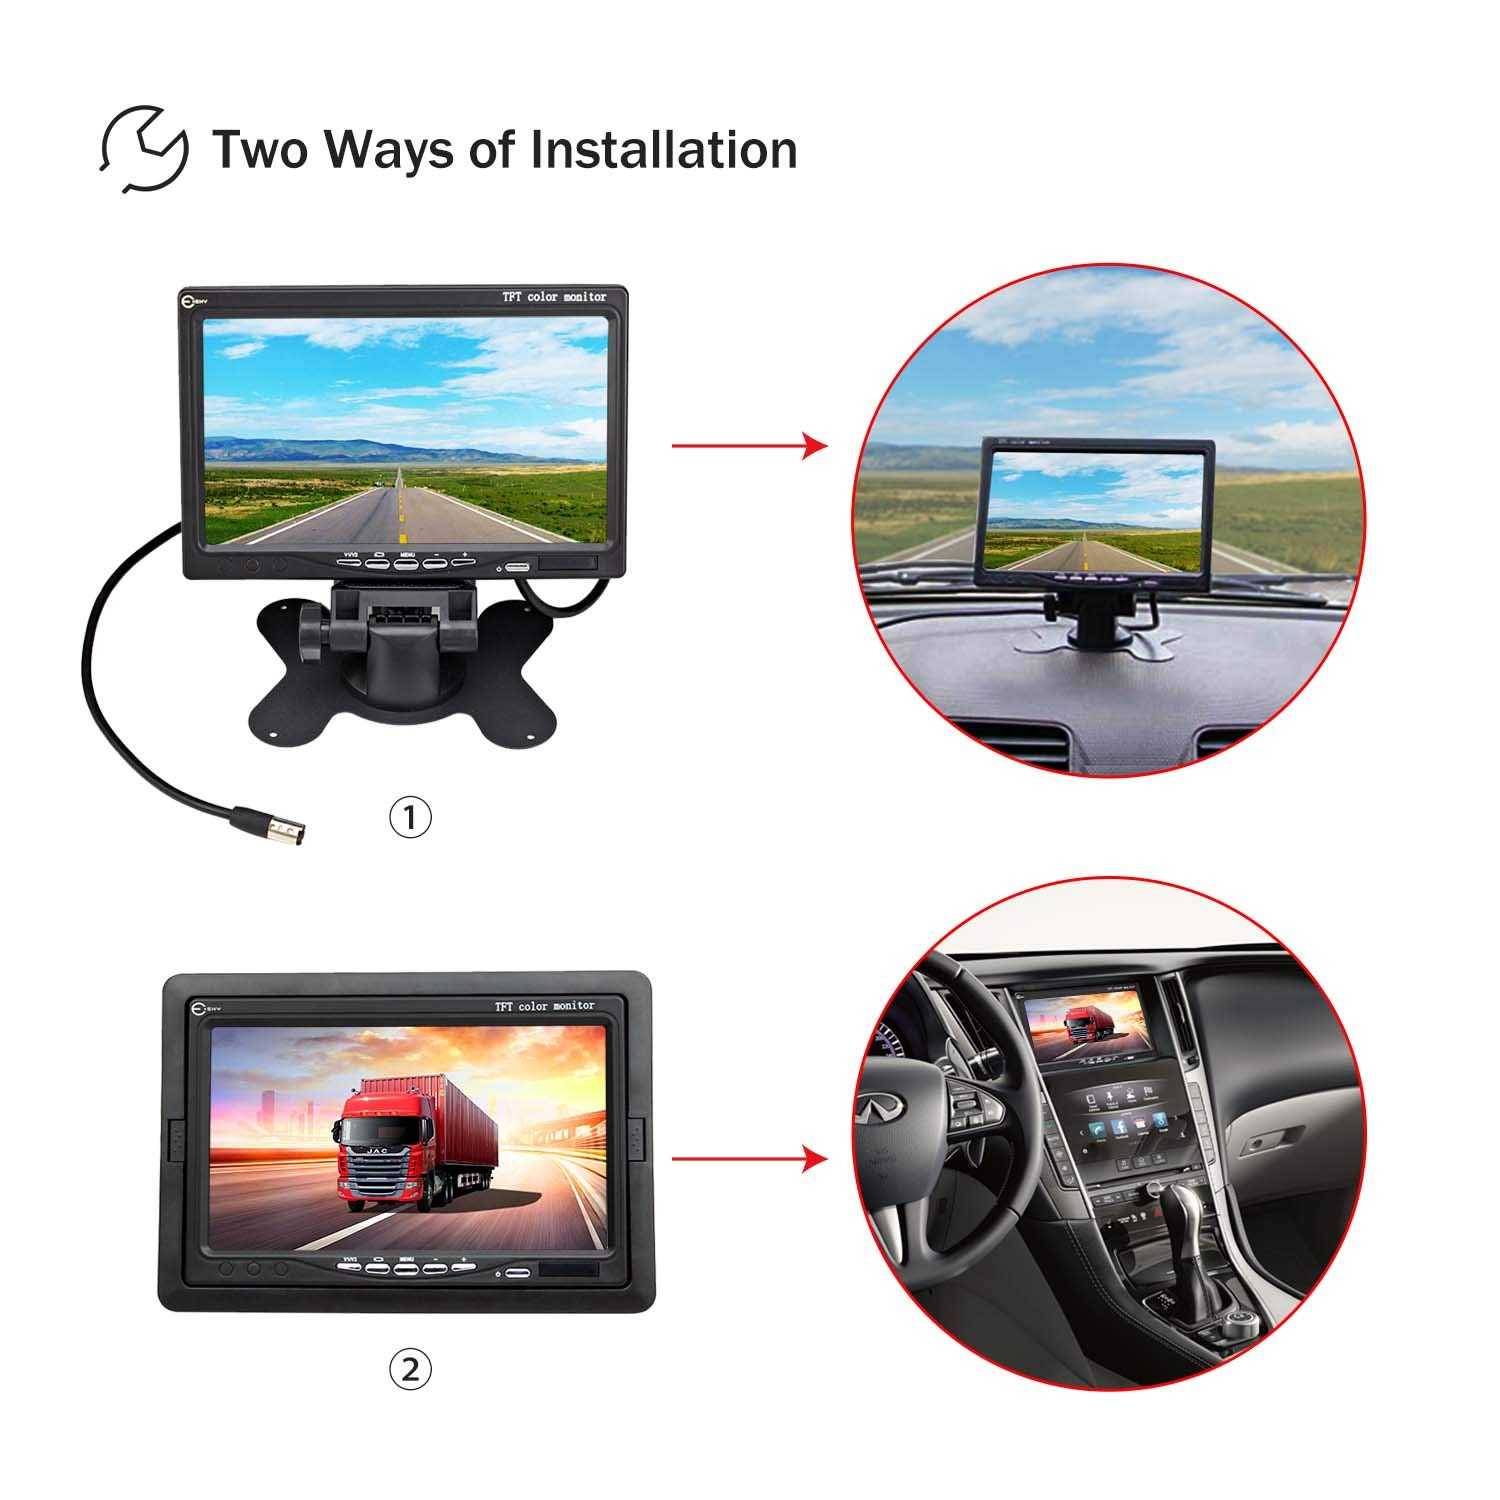 Esky 7 Inch Tft Lcd Color 2 Video Input Car Rear View Wireless Pillow Monitor Wiring Diagram Dvd Vcr With Remote And Stand Cell Phones Accessories